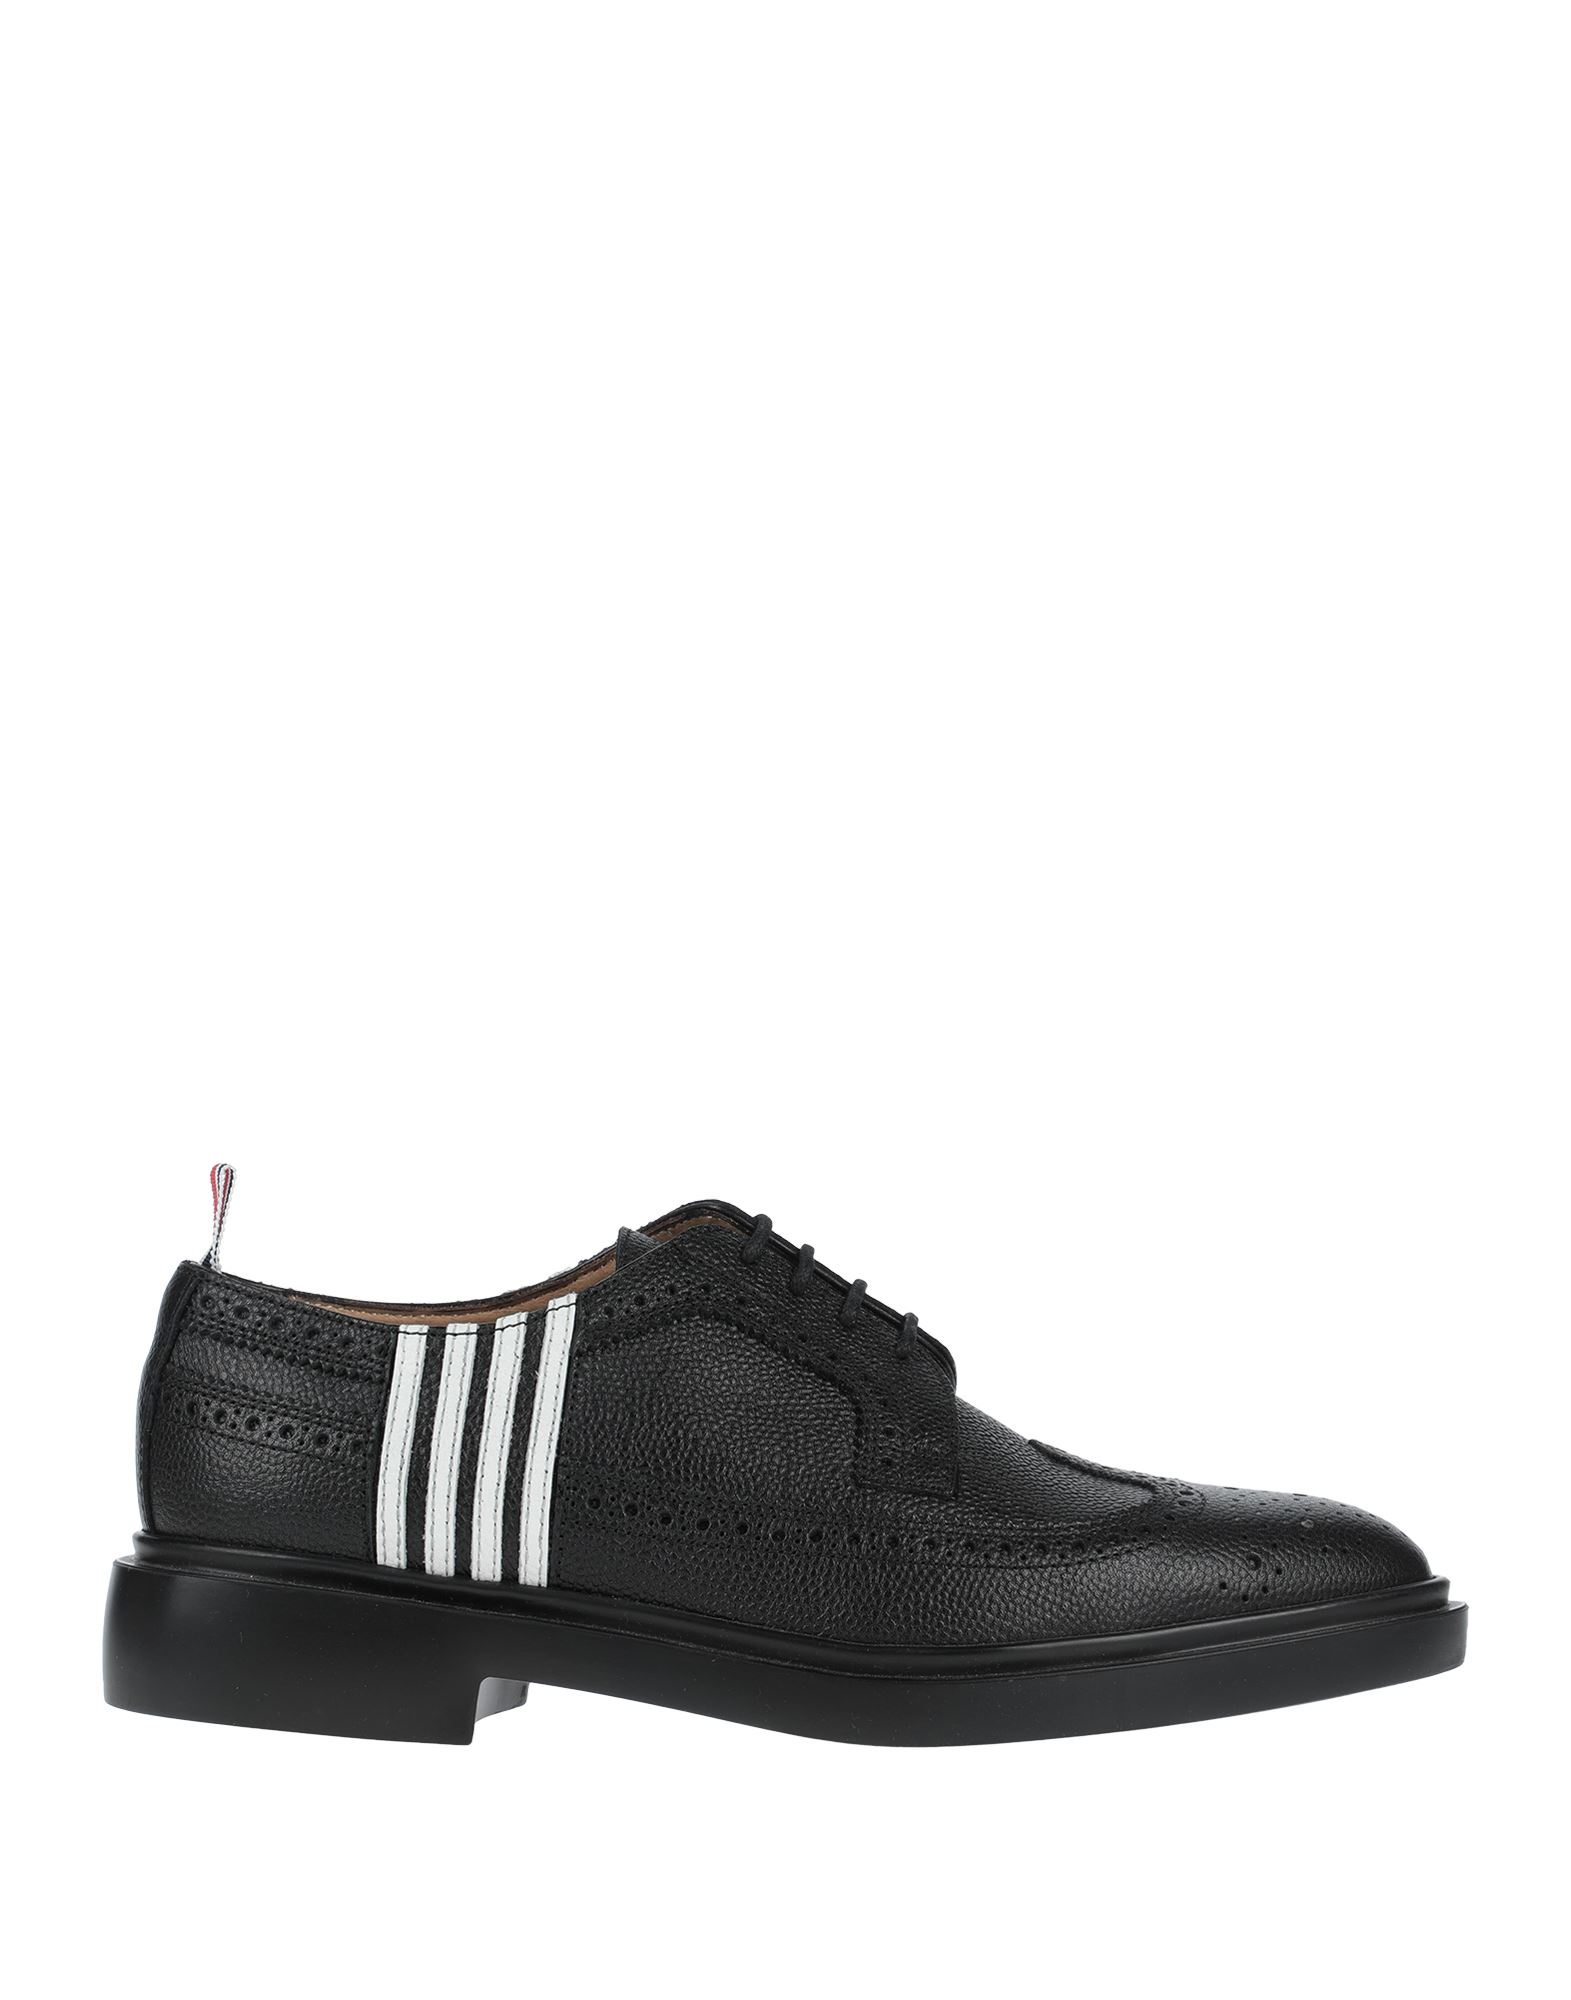 THOM BROWNE Lace-up shoes. leather, textured leather, no appliqués, solid color, round toeline, square heel, leather lining, rubber sole, contains non-textile parts of animal origin. Soft Leather